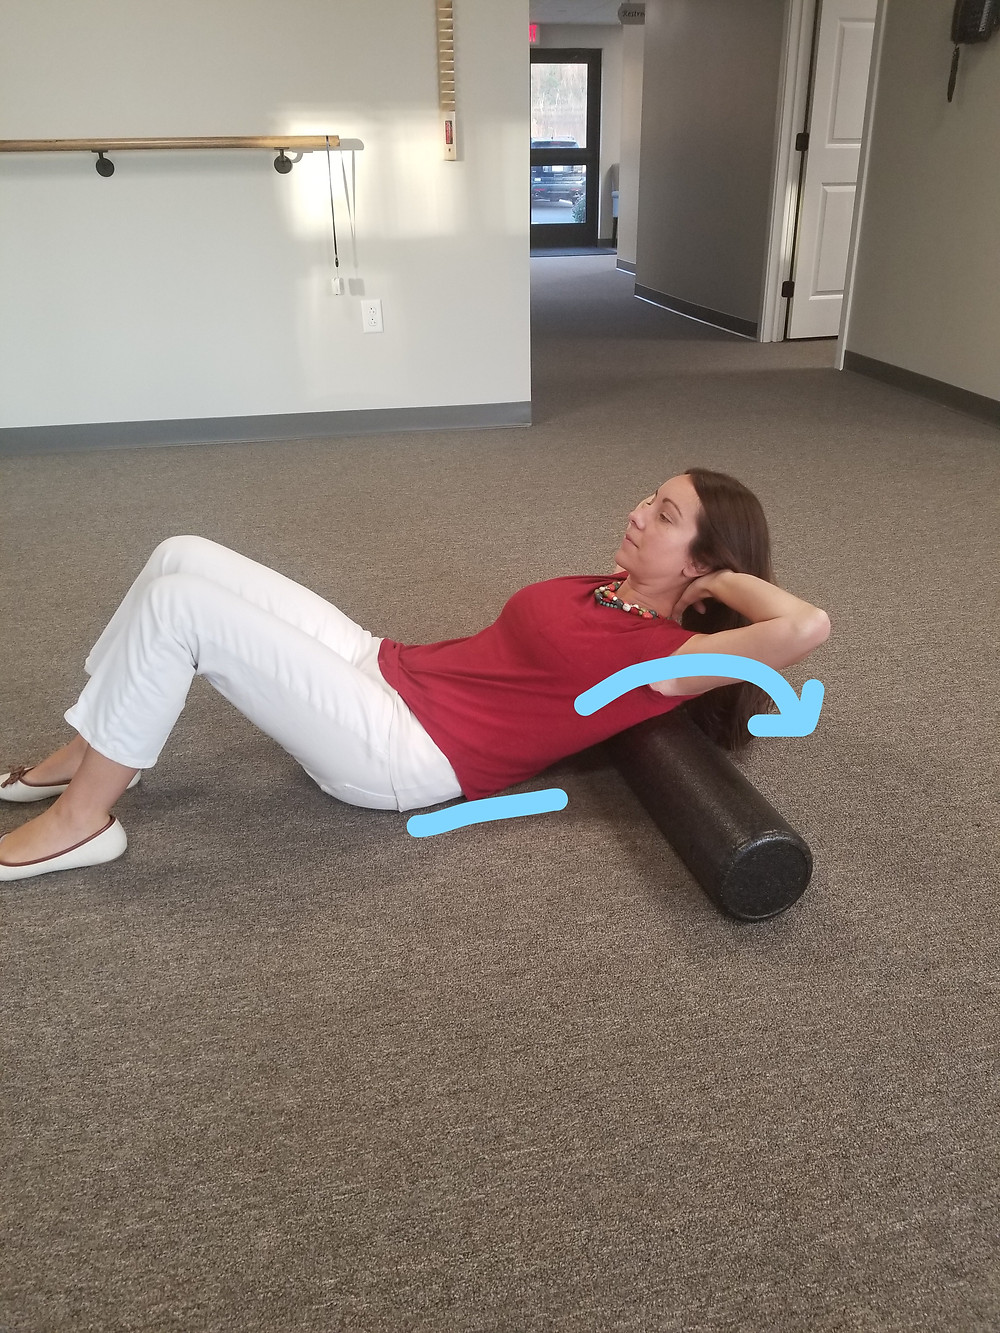 Upper thoracic extension on foam roll